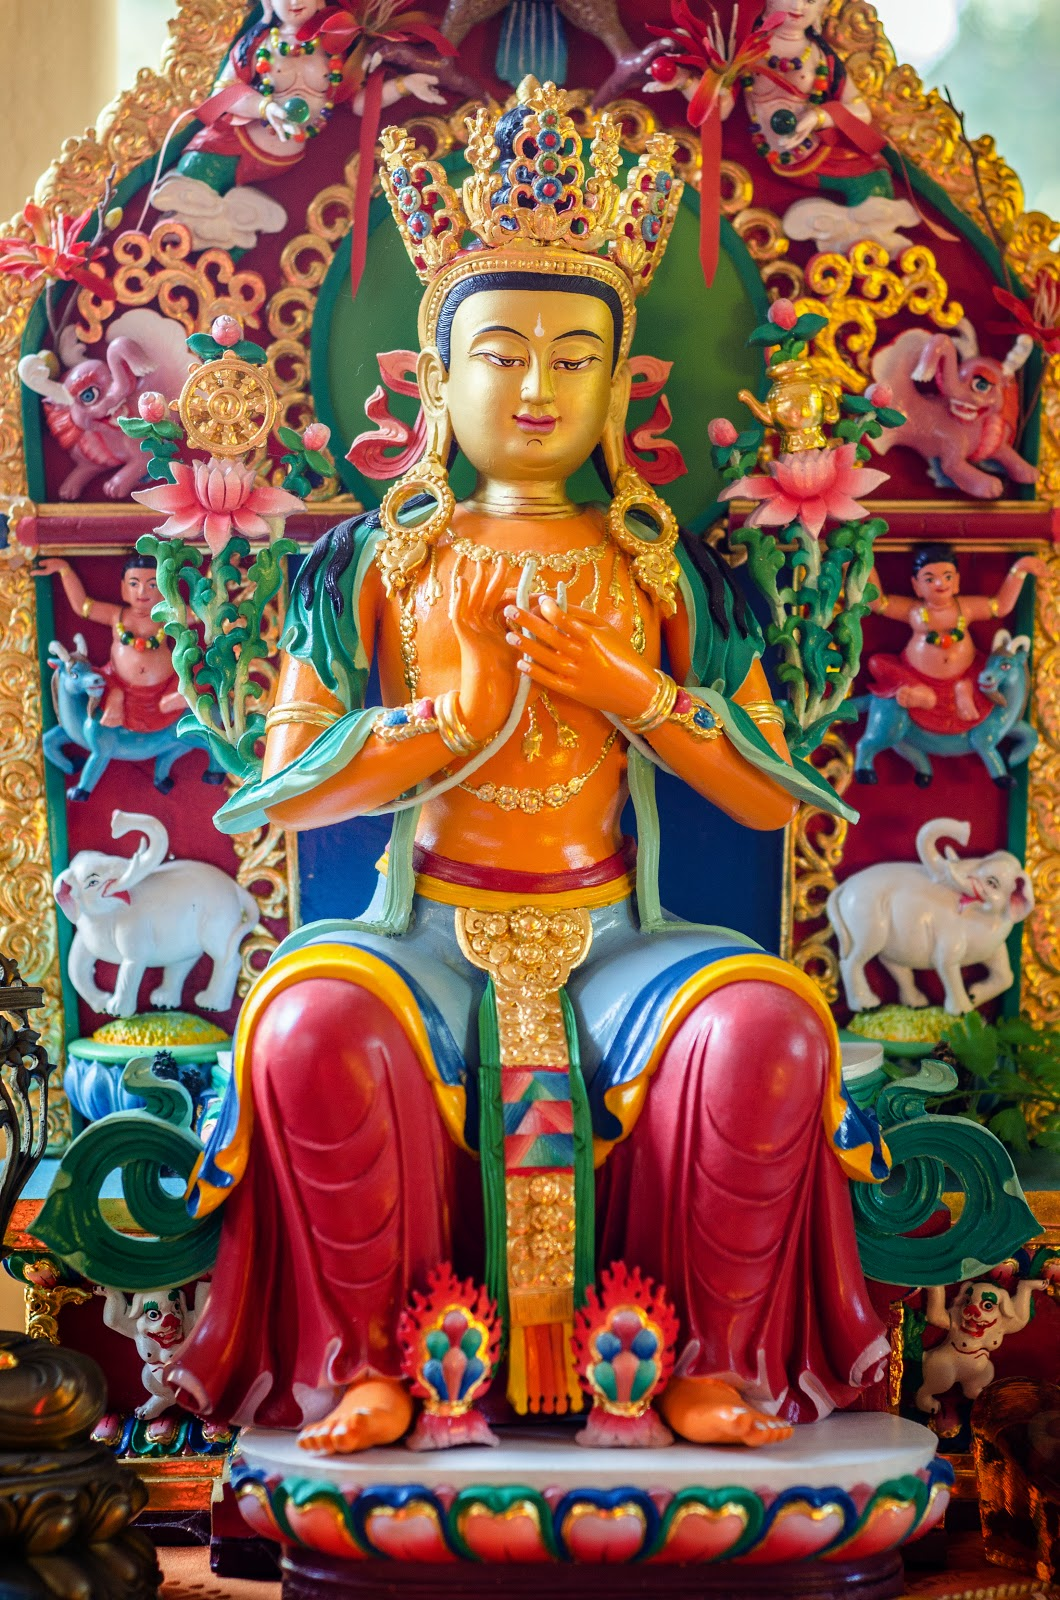 Maitreya statue and extensive offerings at Kachoe Dechen Ling. Photo by Chris Majors.